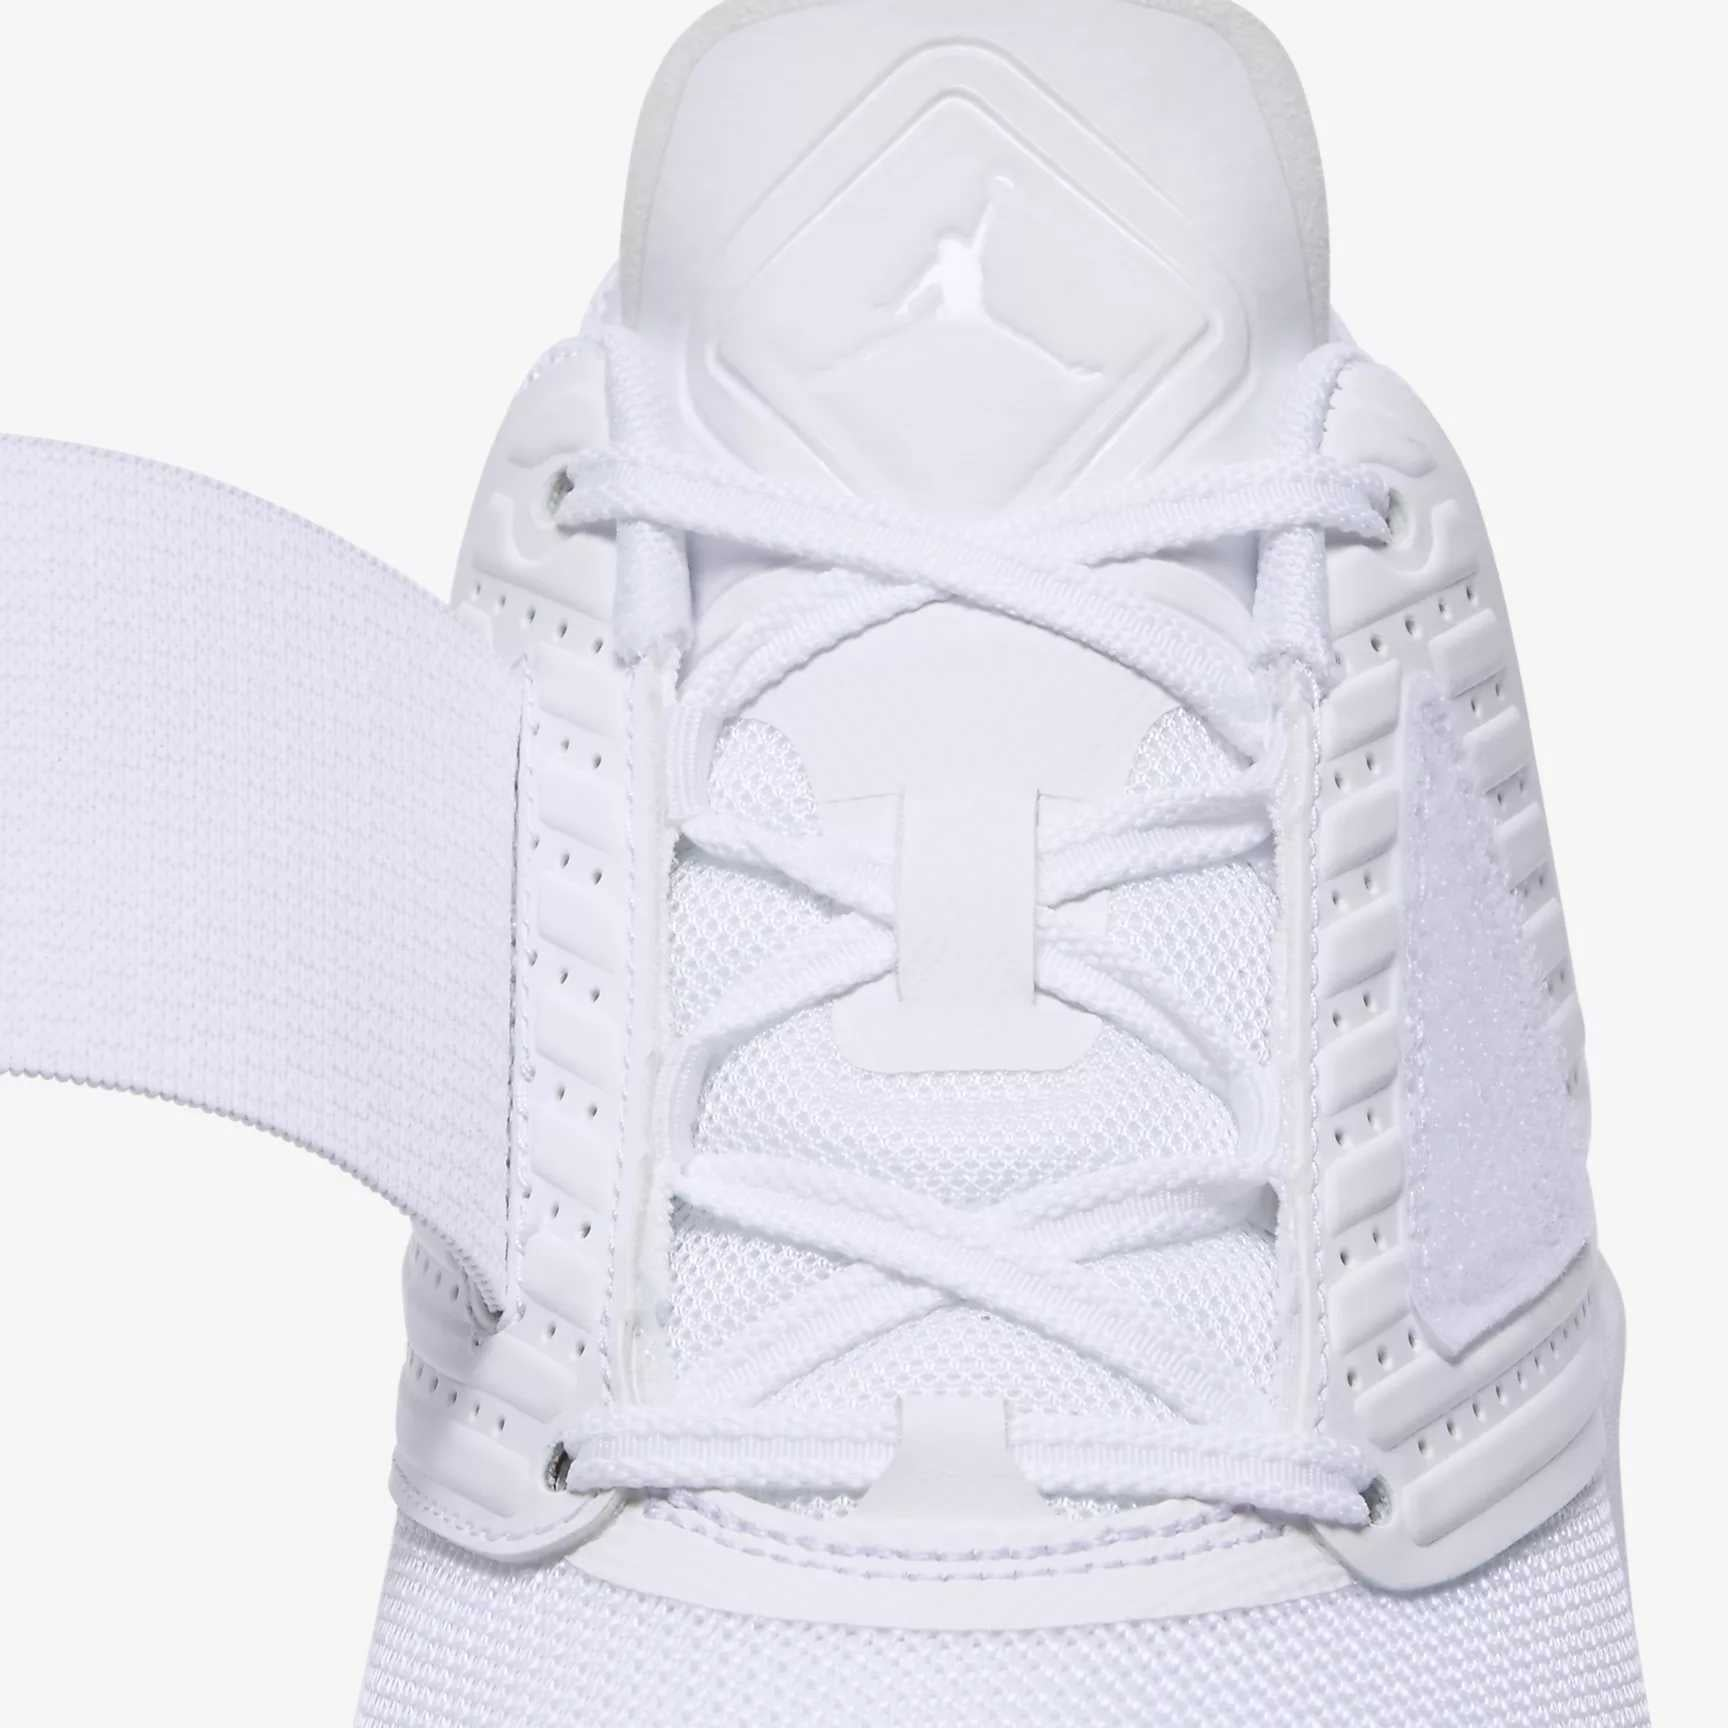 Nike Jordan Training Relentless Training Shoe - White